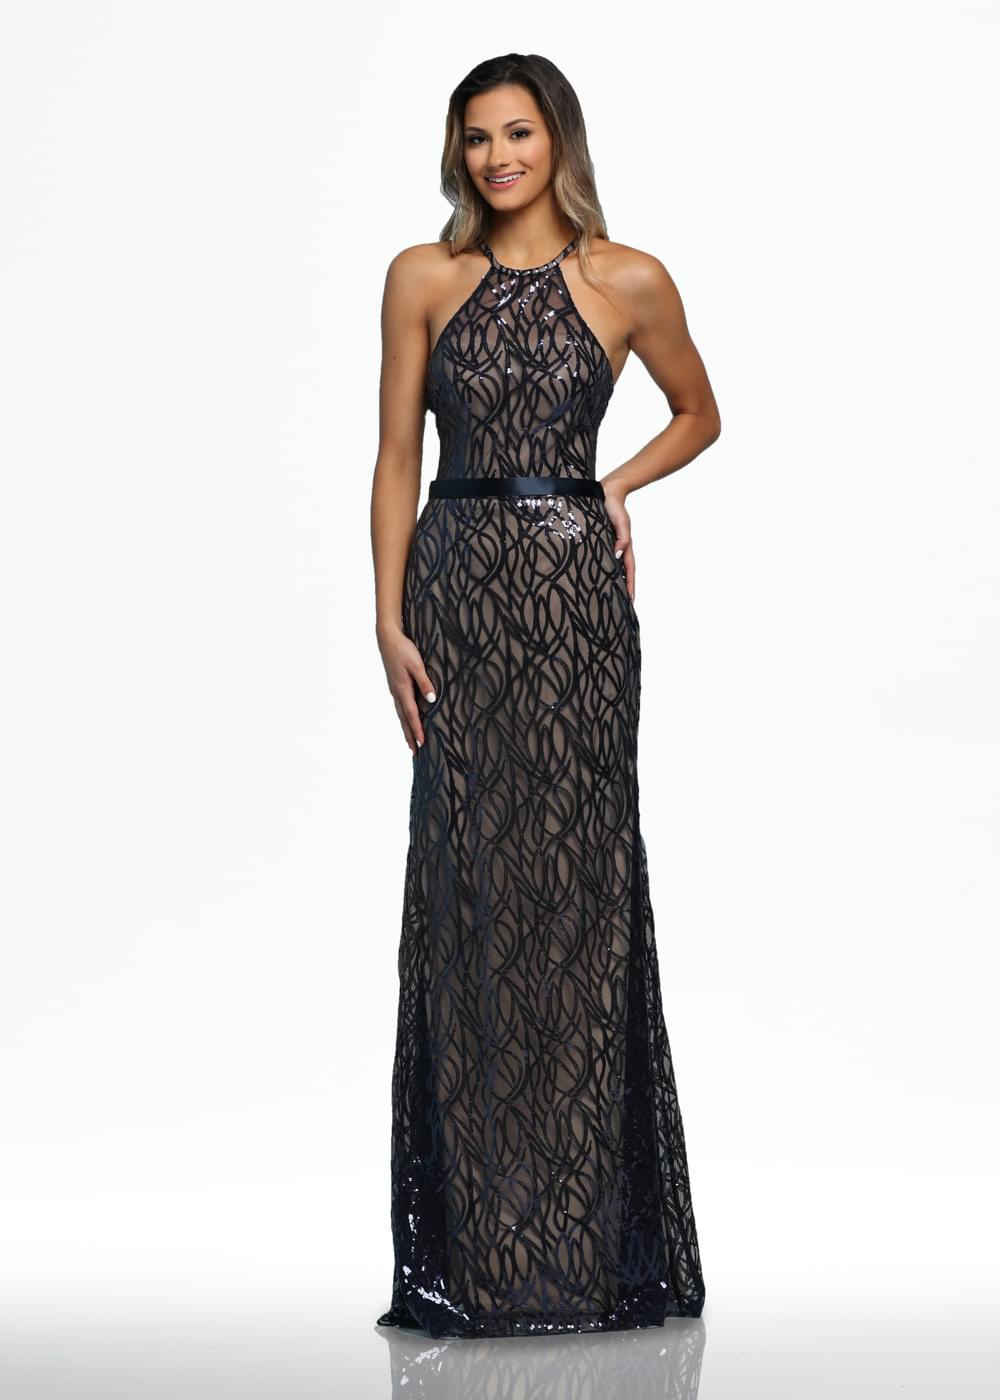 TH-80119 Black Dresses By Ashdon